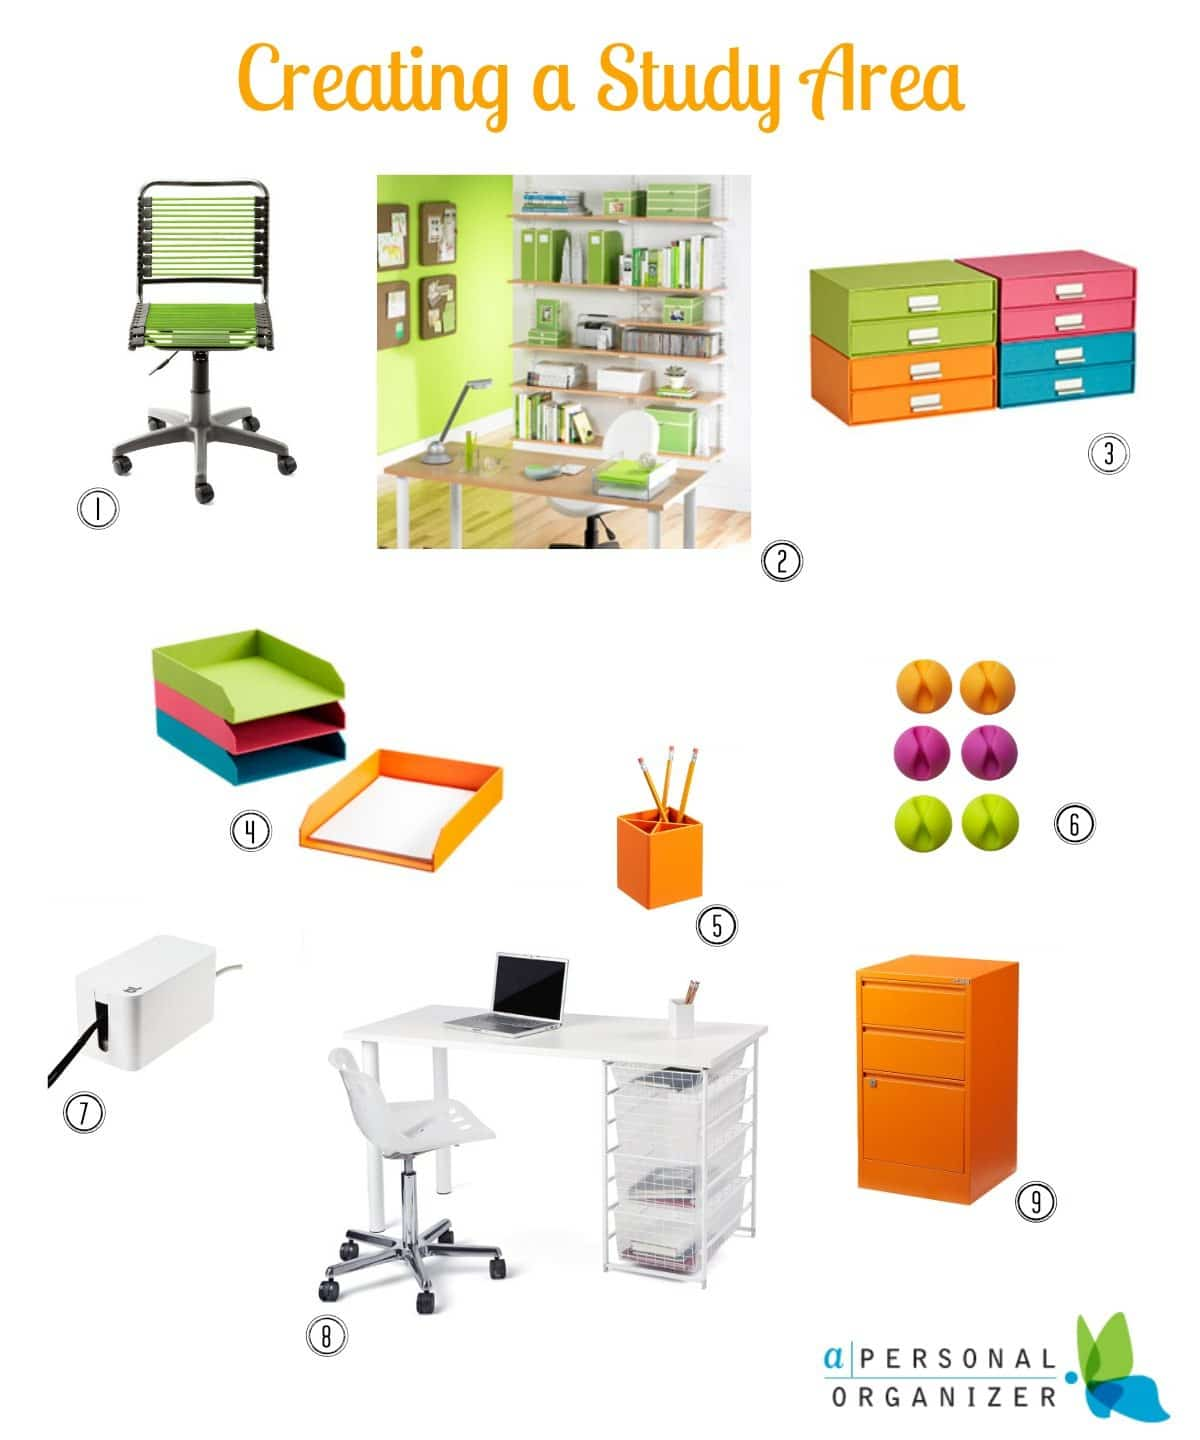 How to create a study area for your kids. If you kids do their homework in your home office, what about creating a study area for them? http://bit.ly/1gp0LYU